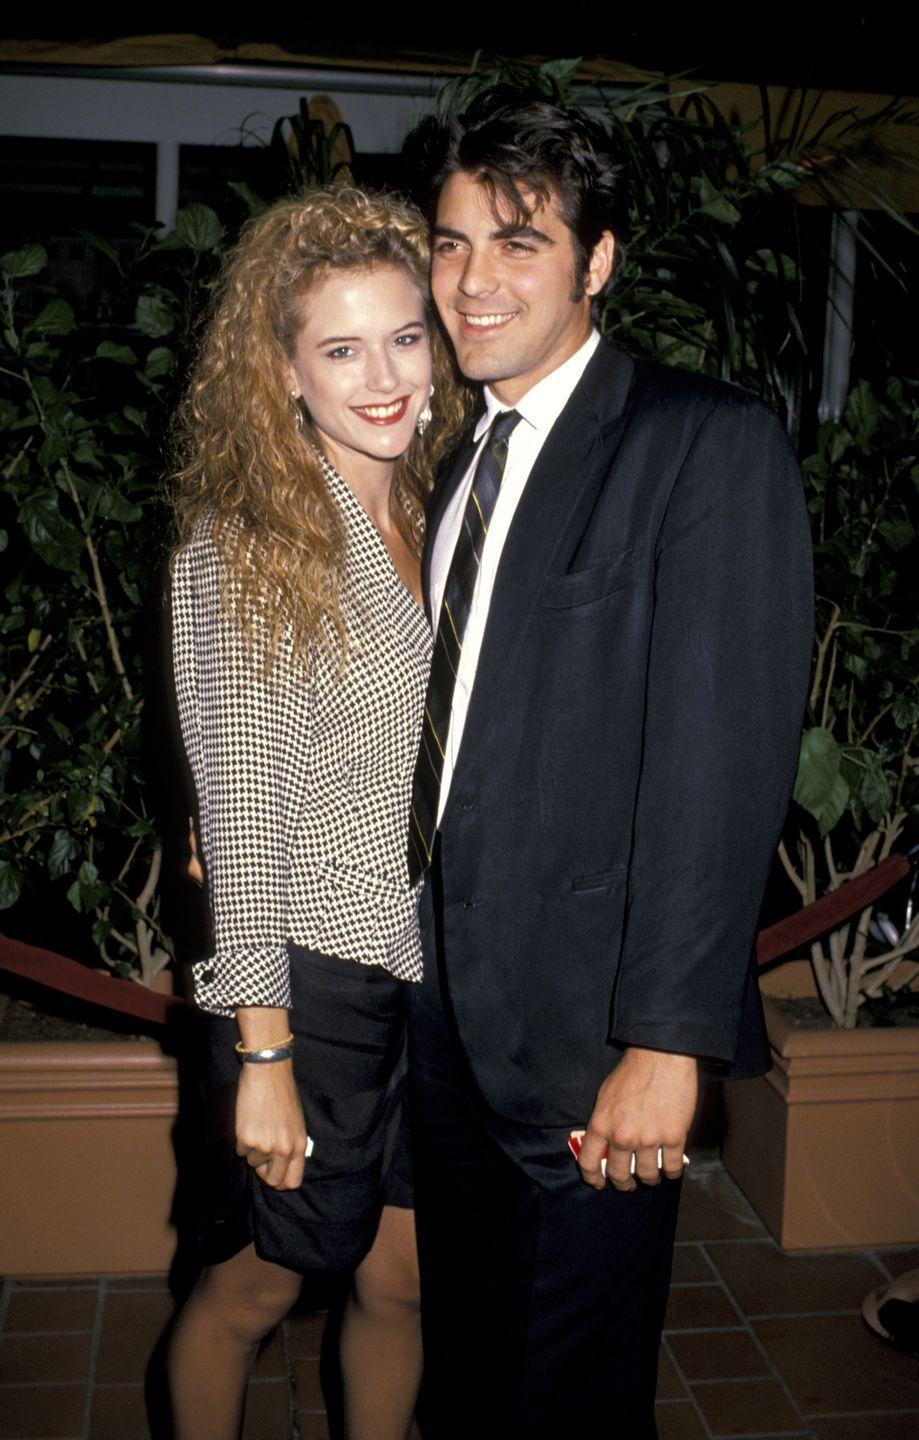 <p>George Clooney was still an up-and-coming actor (he hadn't landed his role on <em>ER </em>yet) when he attended the premiere of <em>Twins </em>with then-girlfriend Kelly Preston. </p>